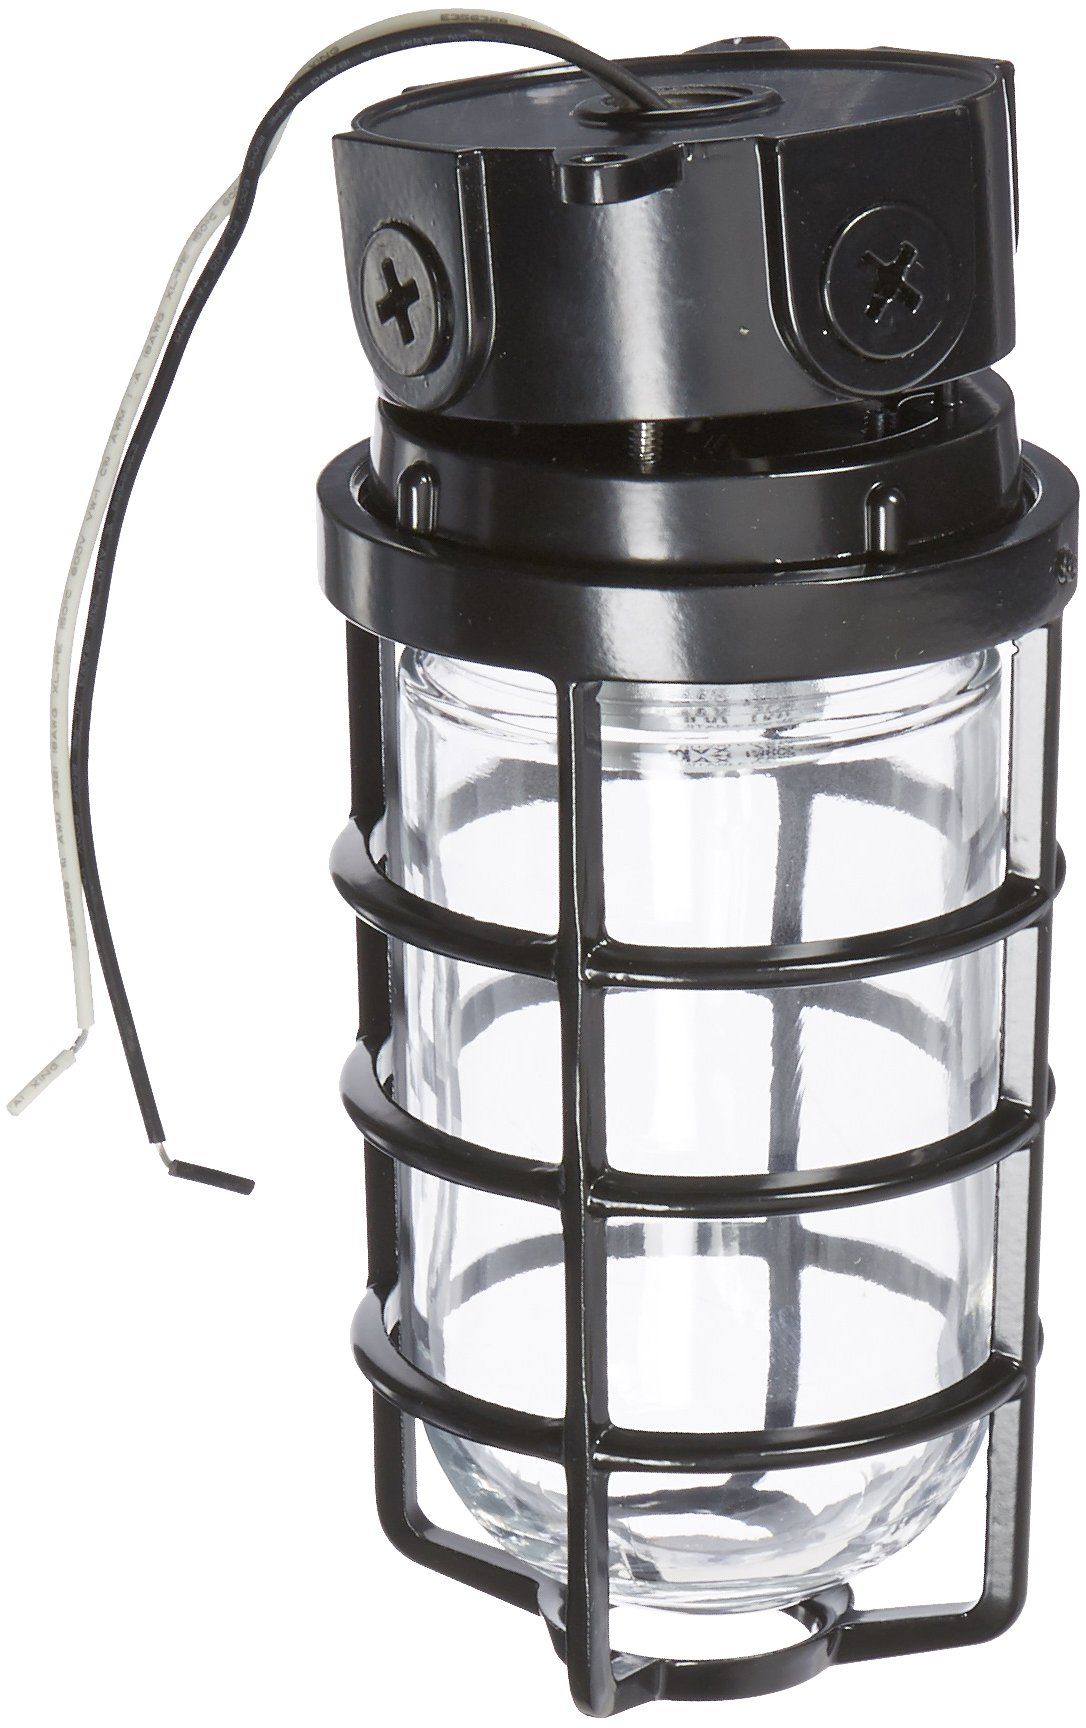 RAB Lighting VLX100DGB Vaporproof VLX 3'' Ceiling Box Mount with Glass Globe and Cast Guard, A19 Type, Aluminum, 150W Power, 1/2'' Hub, Black